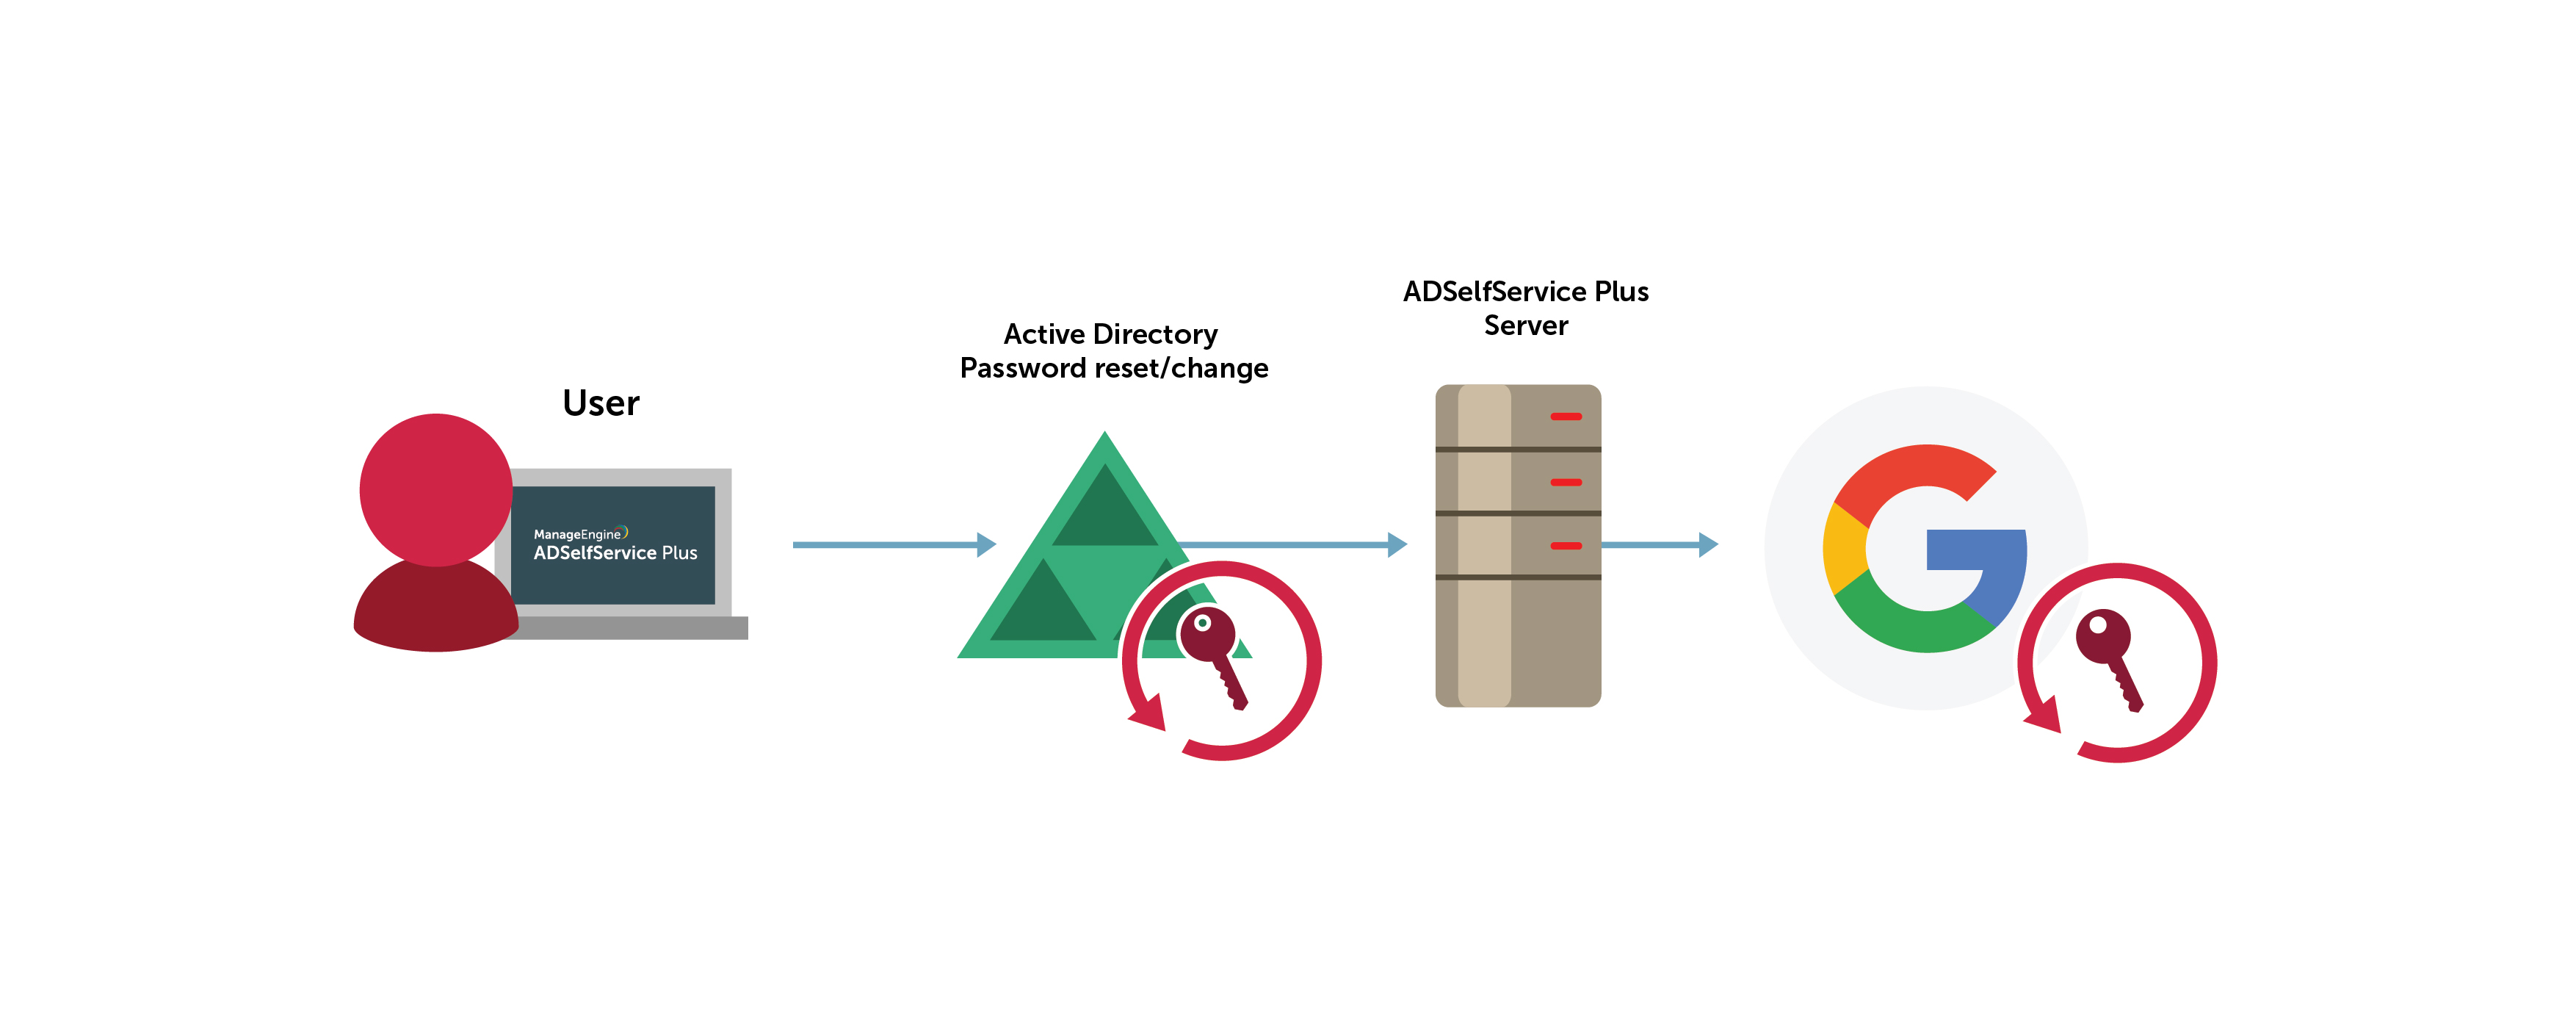 Synchronize employees' G Suite and Active Directory